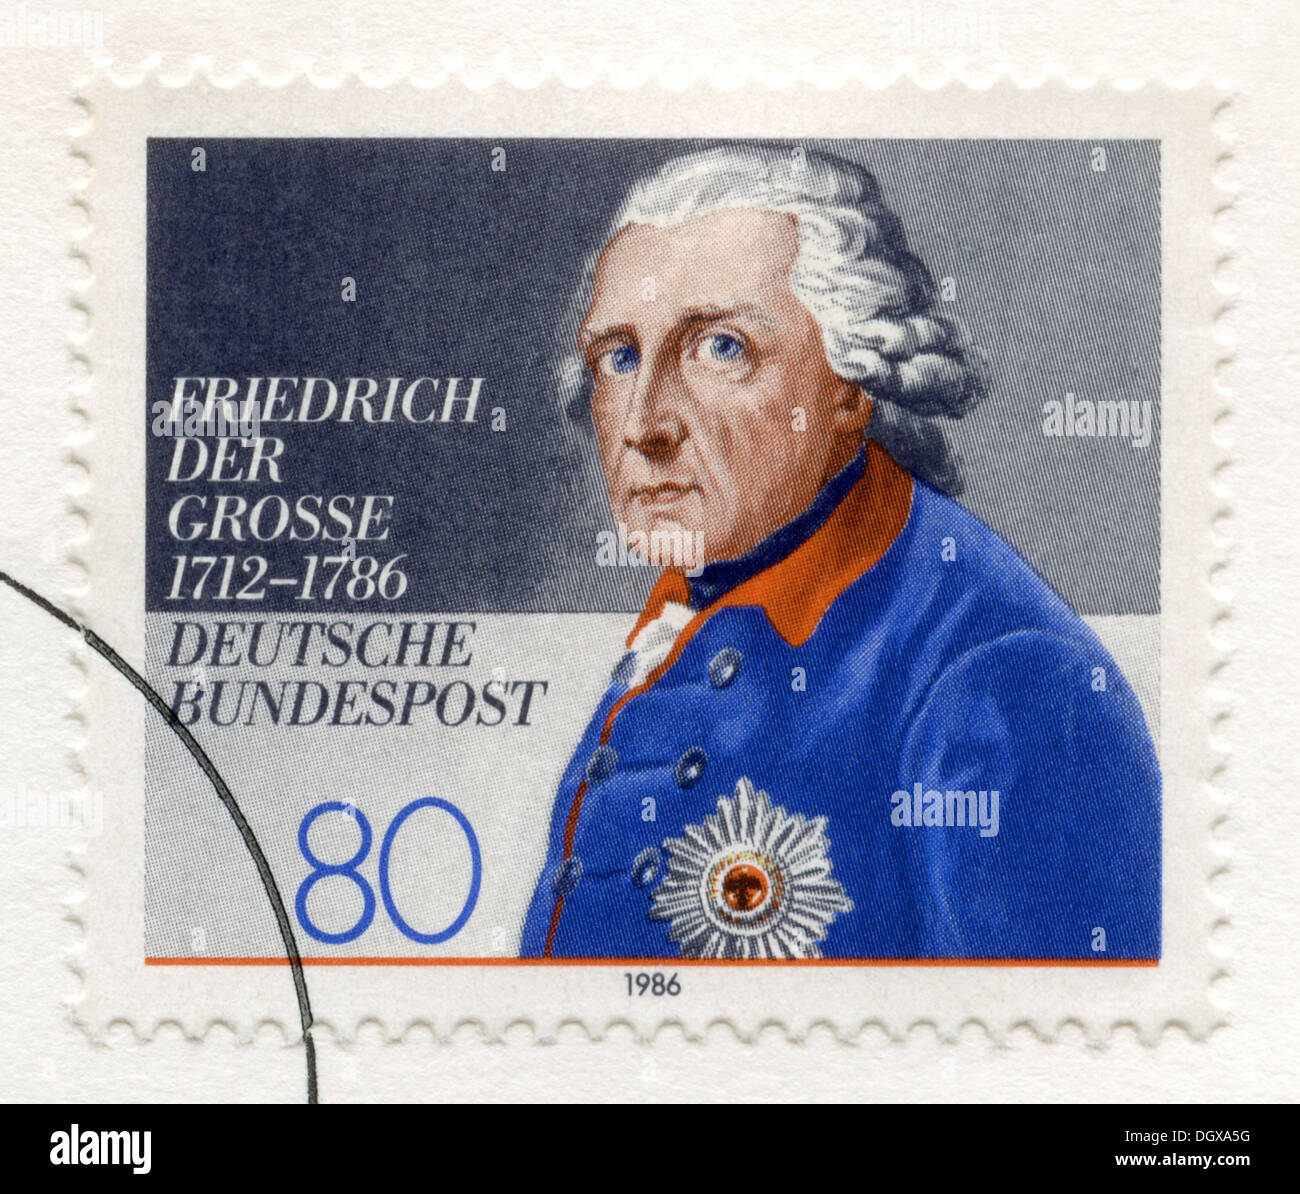 Germany postage stamp depicting King Frederick II of Prussia - Stock Image